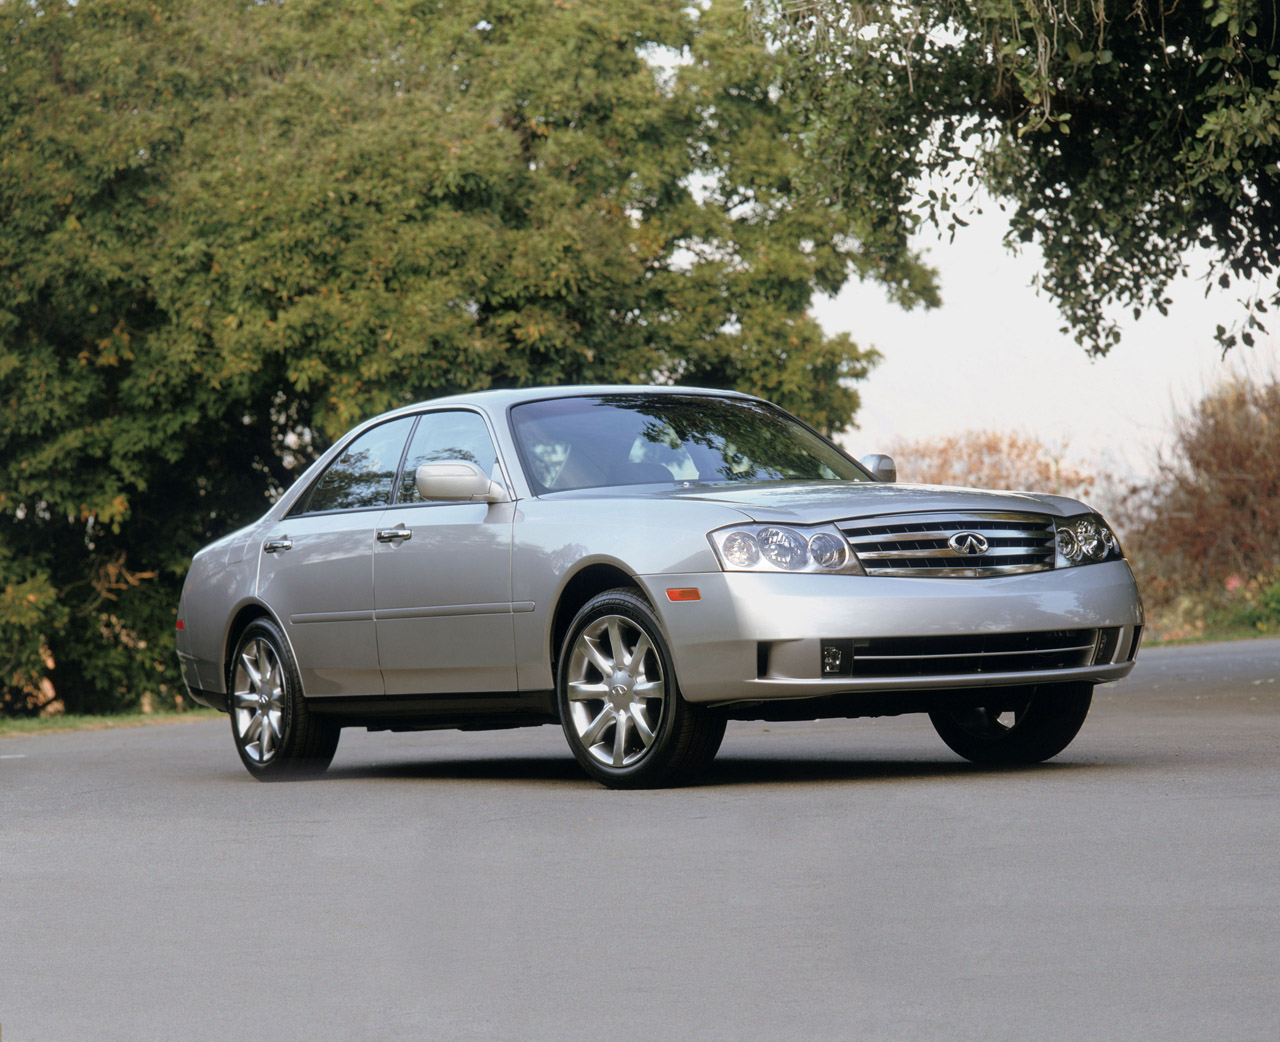 2005 infiniti m45 luxury related infomationspecifications weili 2004 infiniti m45 photos vanachro Image collections